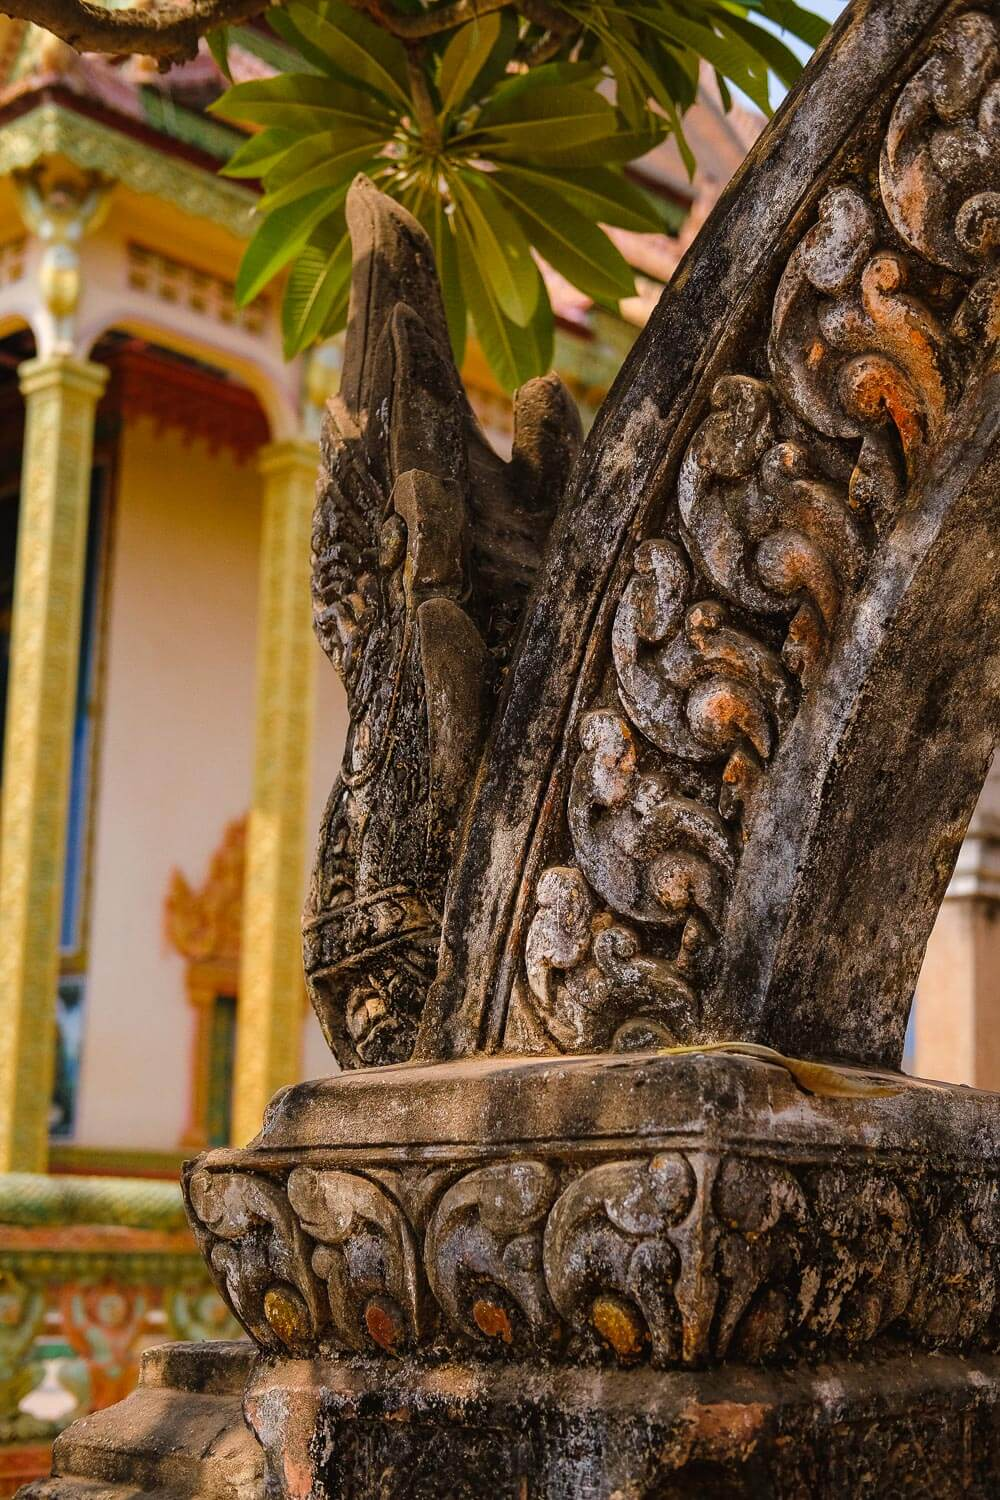 Detailed archway in front of the temple.     #siemreap #angkorwat #travelguide #travelblog #siemreapitinerary #cambodia #travelphotography #landscapephotography #fujifilm #siemreapprivatetour